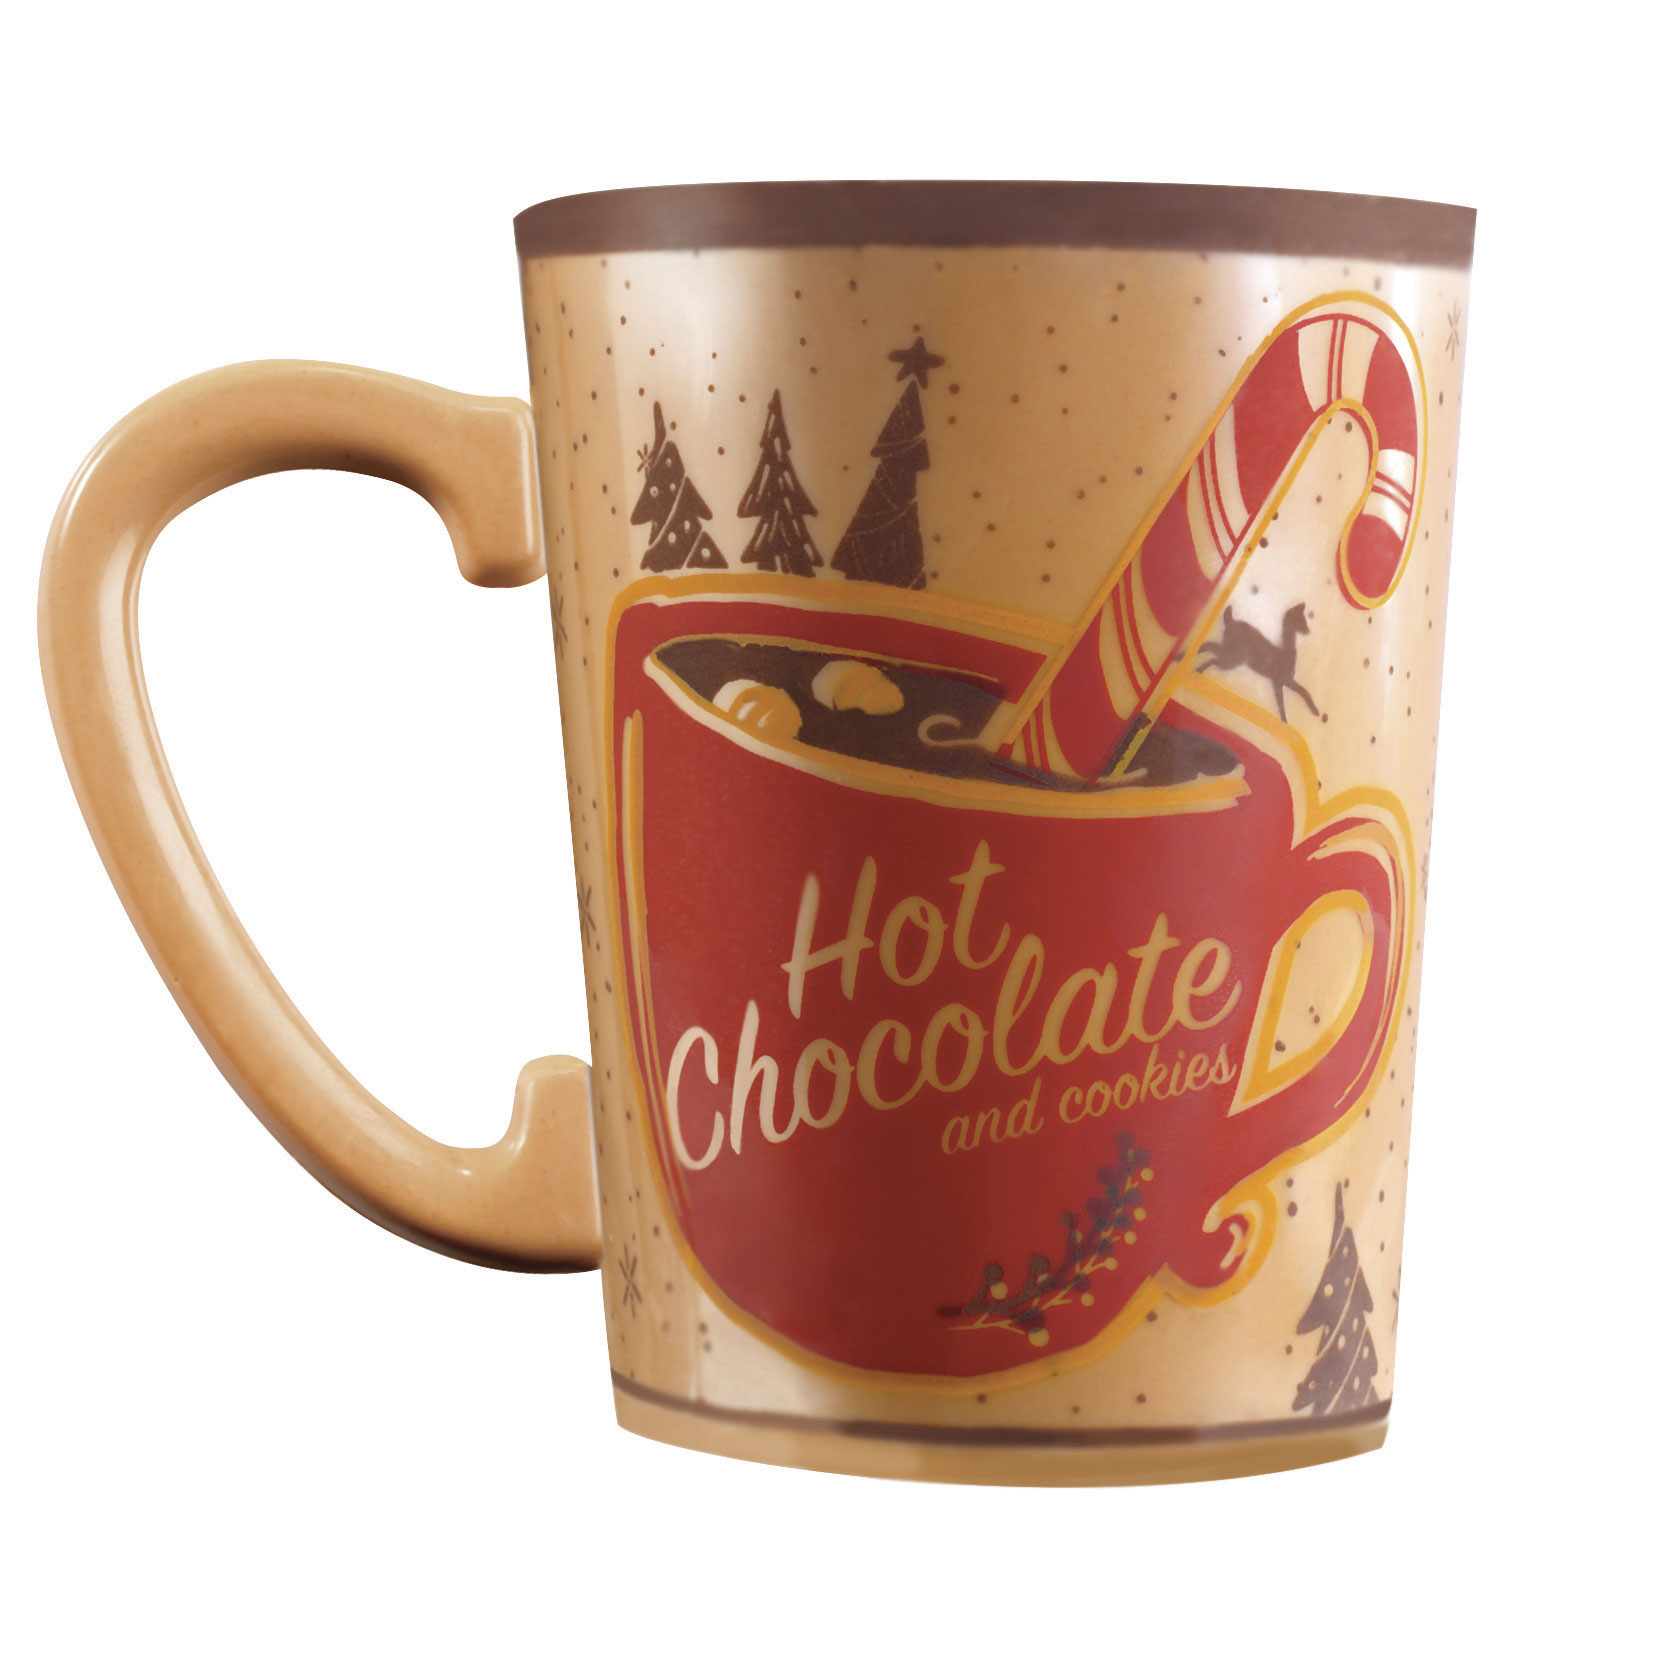 Transfervellen voor mokken hot chocolate